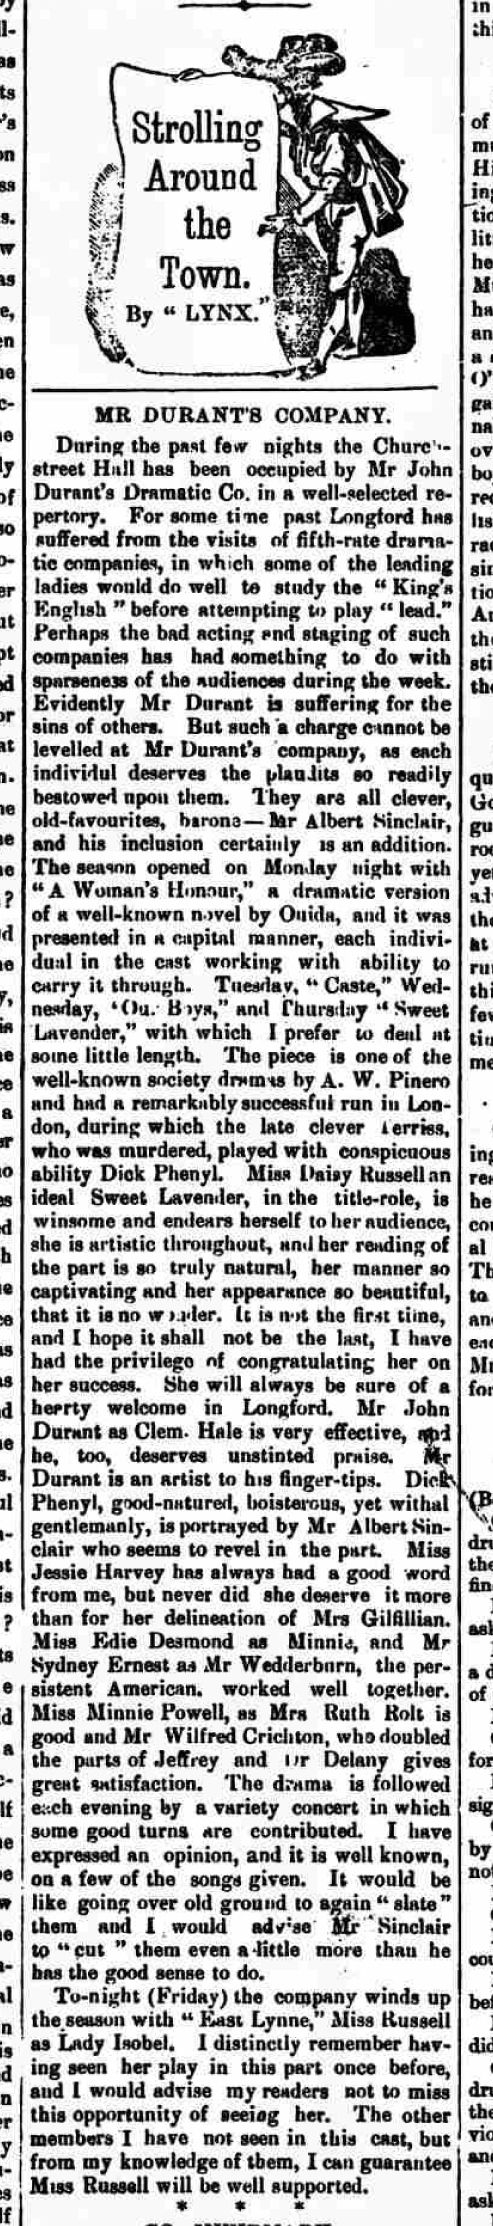 From The Longford Journal July 27th 1901- review of Wilfred and Jessie's performance in John Durant's production.